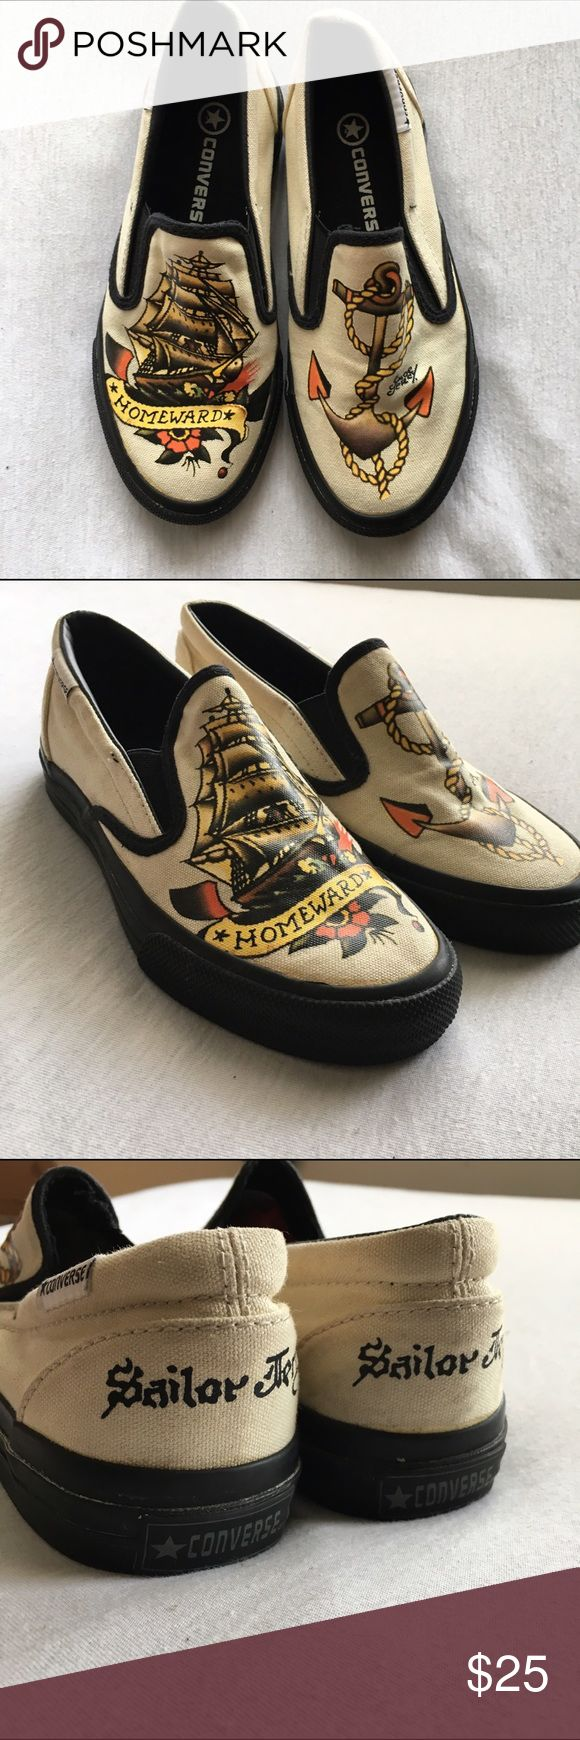 Sailor Jerry Converse Slip Ons Sailor Jerry Converse Slip Ons in excellent used condition. Womens size 5.5. No trades. Converse Shoes Sneakers